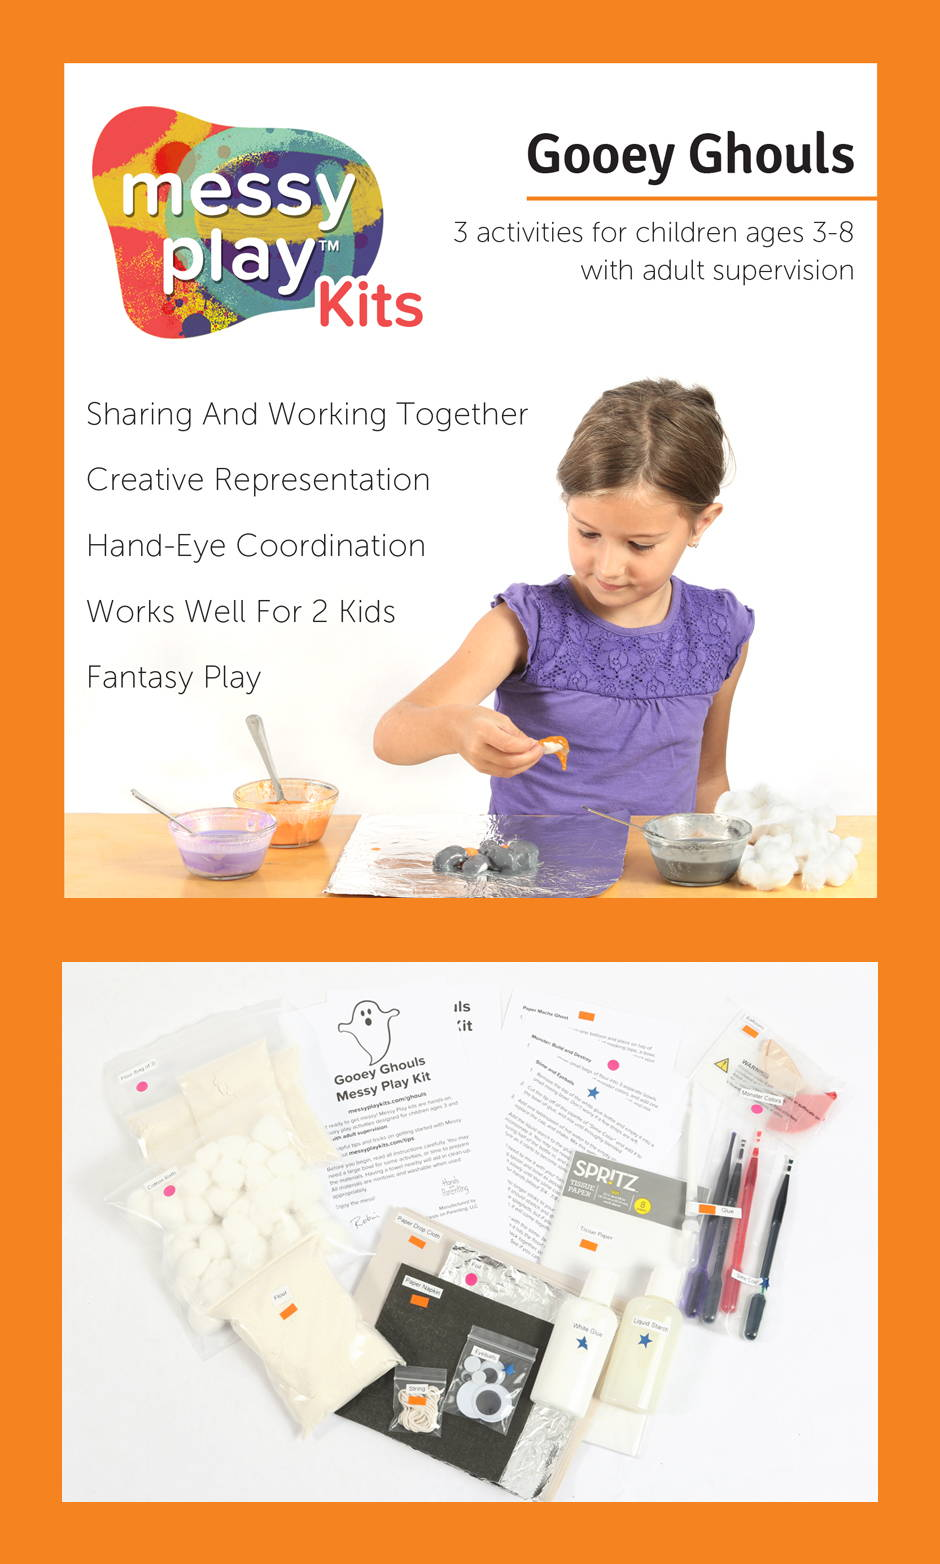 Gooey Ghouls Messy Play Kit contains 3 activities that teach sharing and working together, creative representation, hand-eye coordination, fantasy play. Works well for 2 kids.